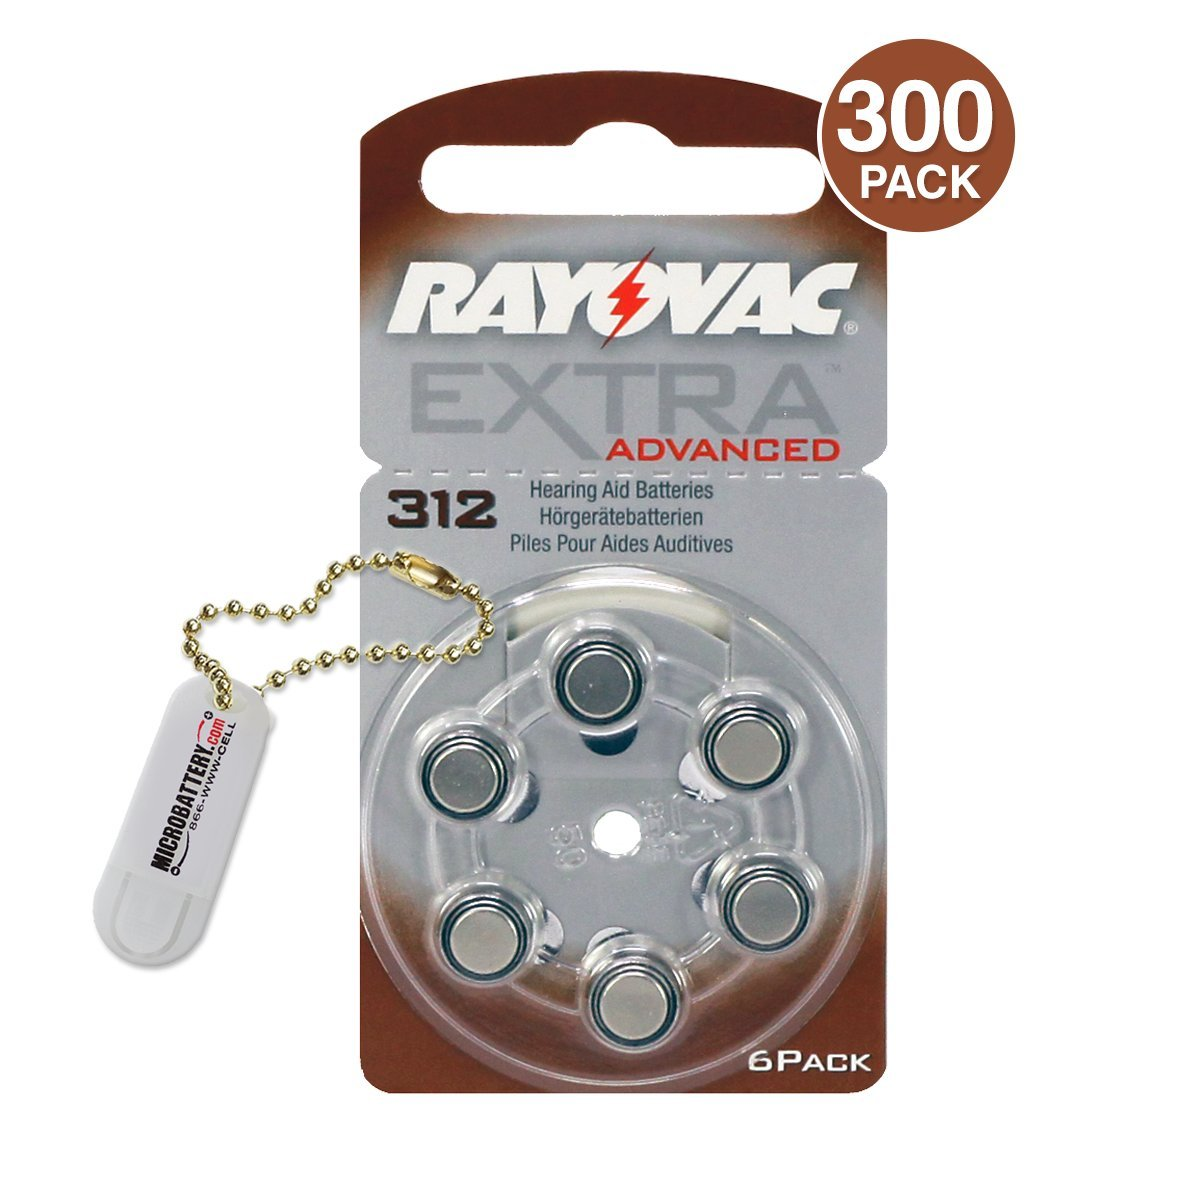 Rayovac Extra Advanced Hearing Aid Batteries Size 312 (300 Batteries) + Keychain by Rayovac